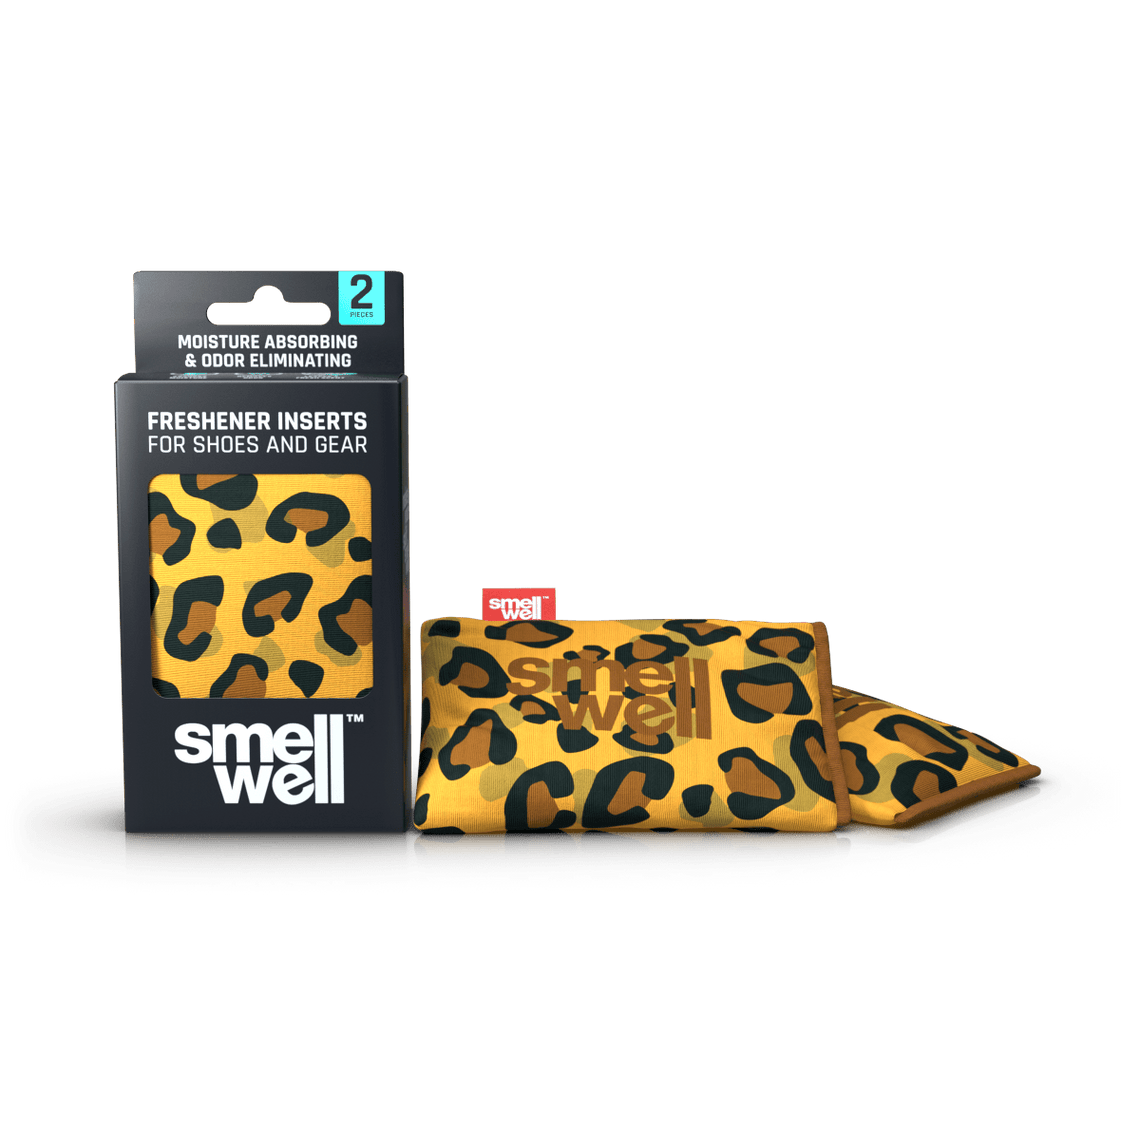 A package of SmellWell Active - Leo Brown and 2 SmellWell Active - Leo Brown freshener inserts bags next to it